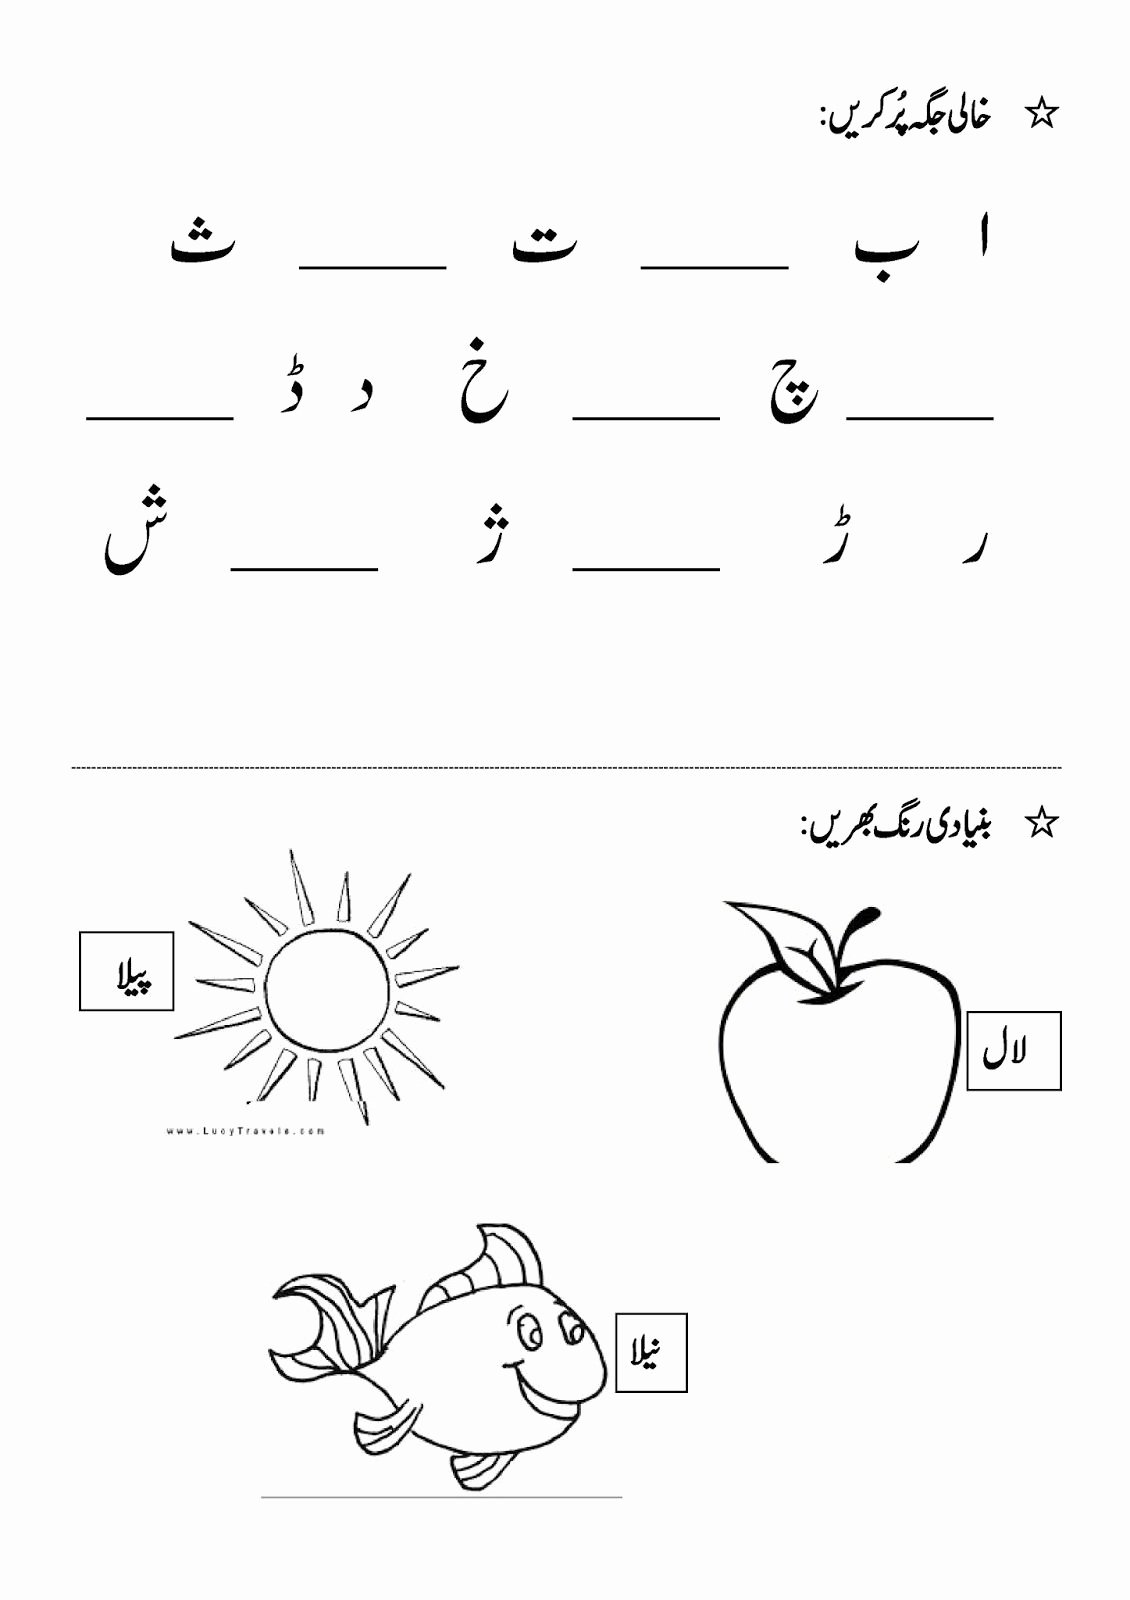 Download Urdu Worksheets for Preschoolers Lovely Urdu Alif Worksheet Printable Worksheets and Activities for